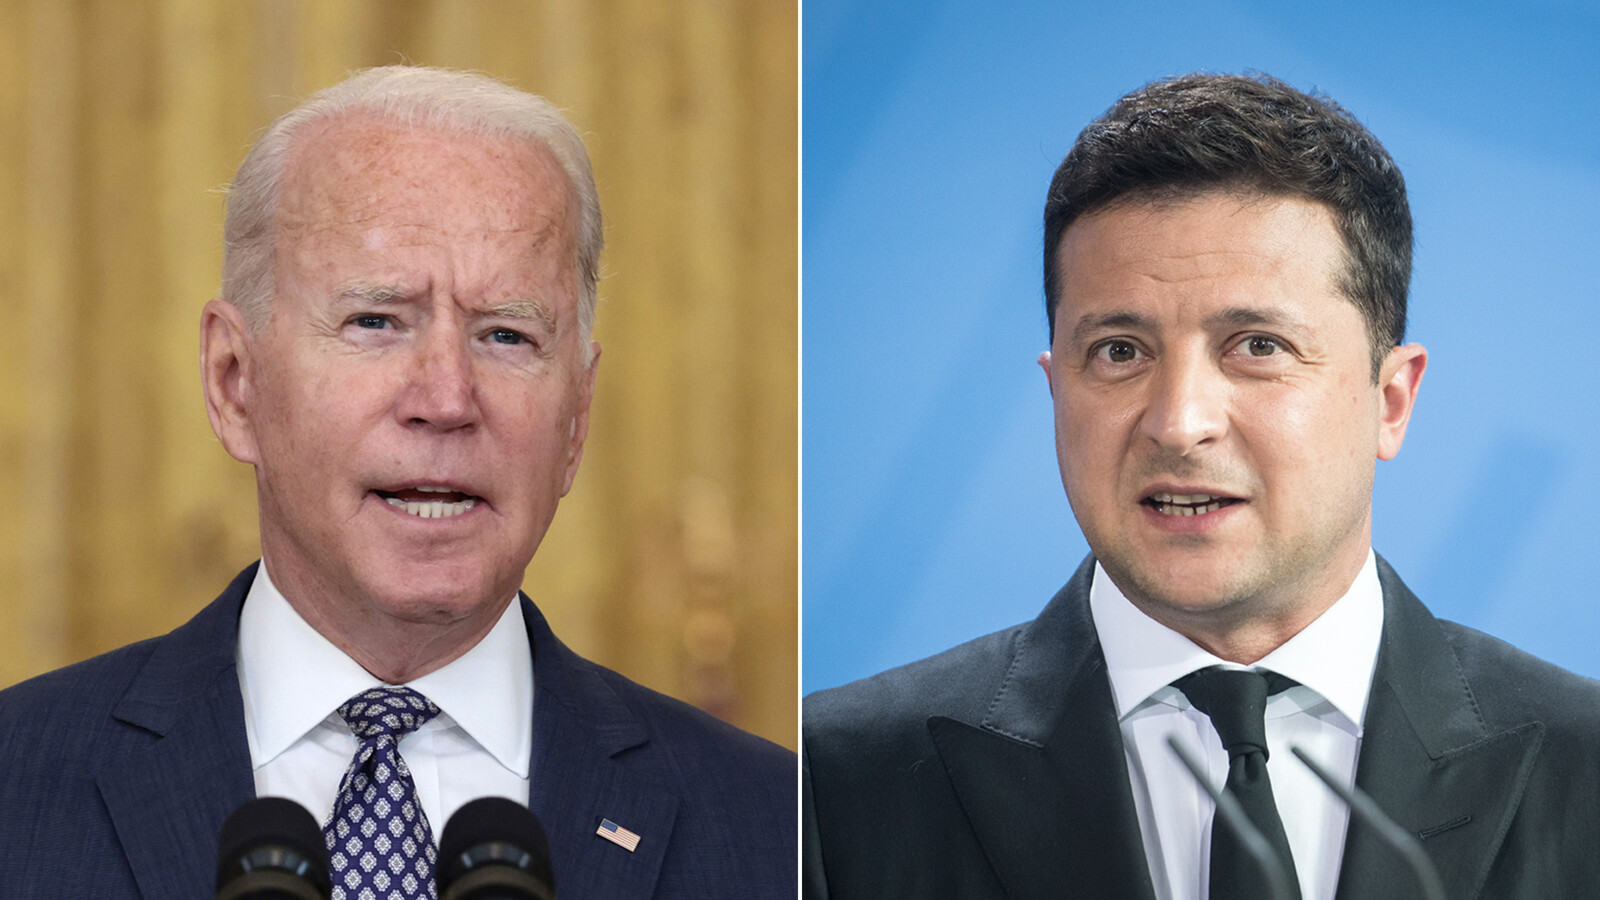 Ukrainian President accomplishes years-long quest for a White House visit with Biden meeting